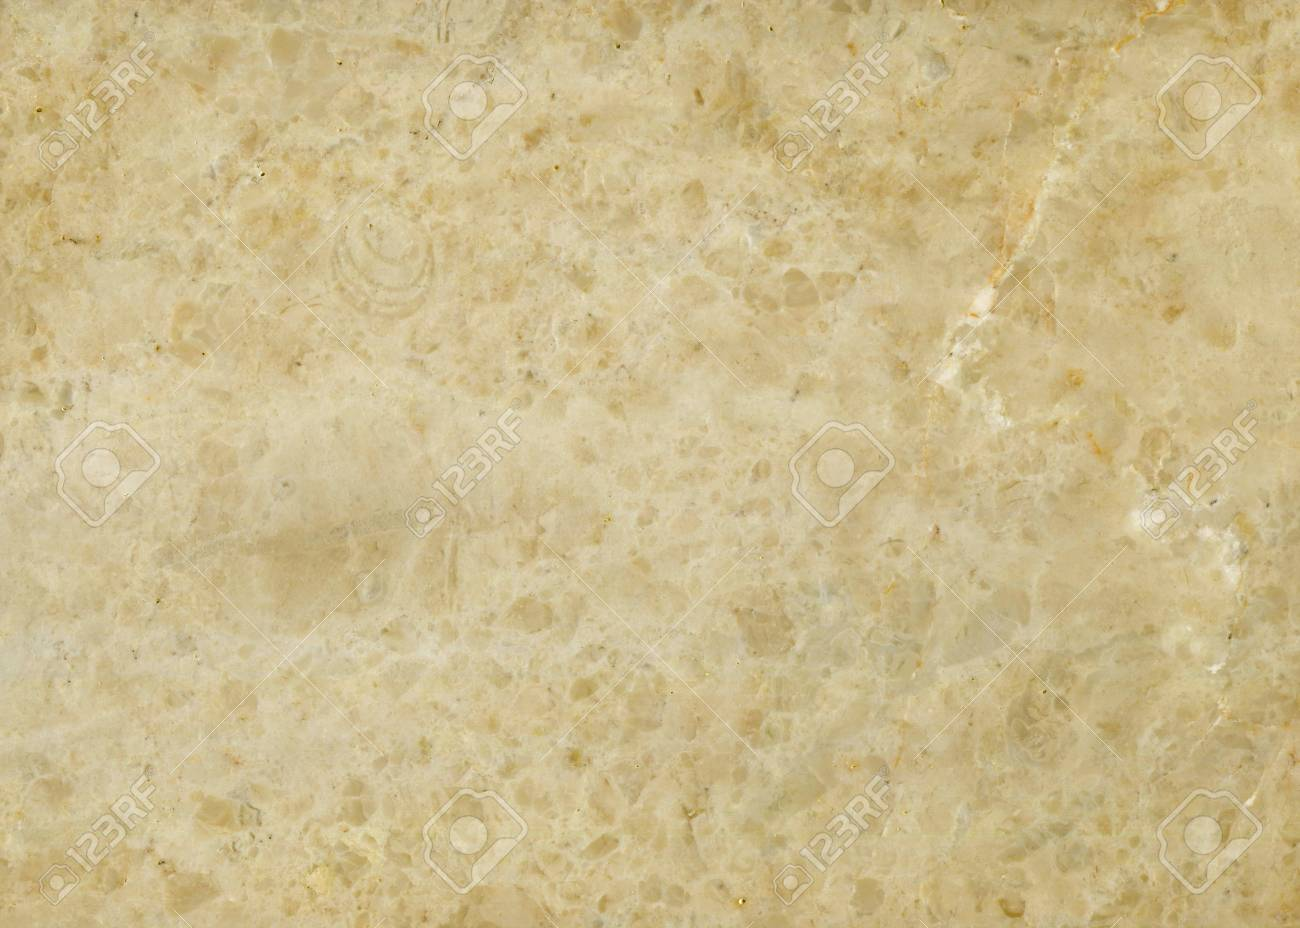 Best Wallpaper High Quality Marble - 53985523-marble-texture-marble-background-high-quality-marble  Best Photo Reference_96710.jpg